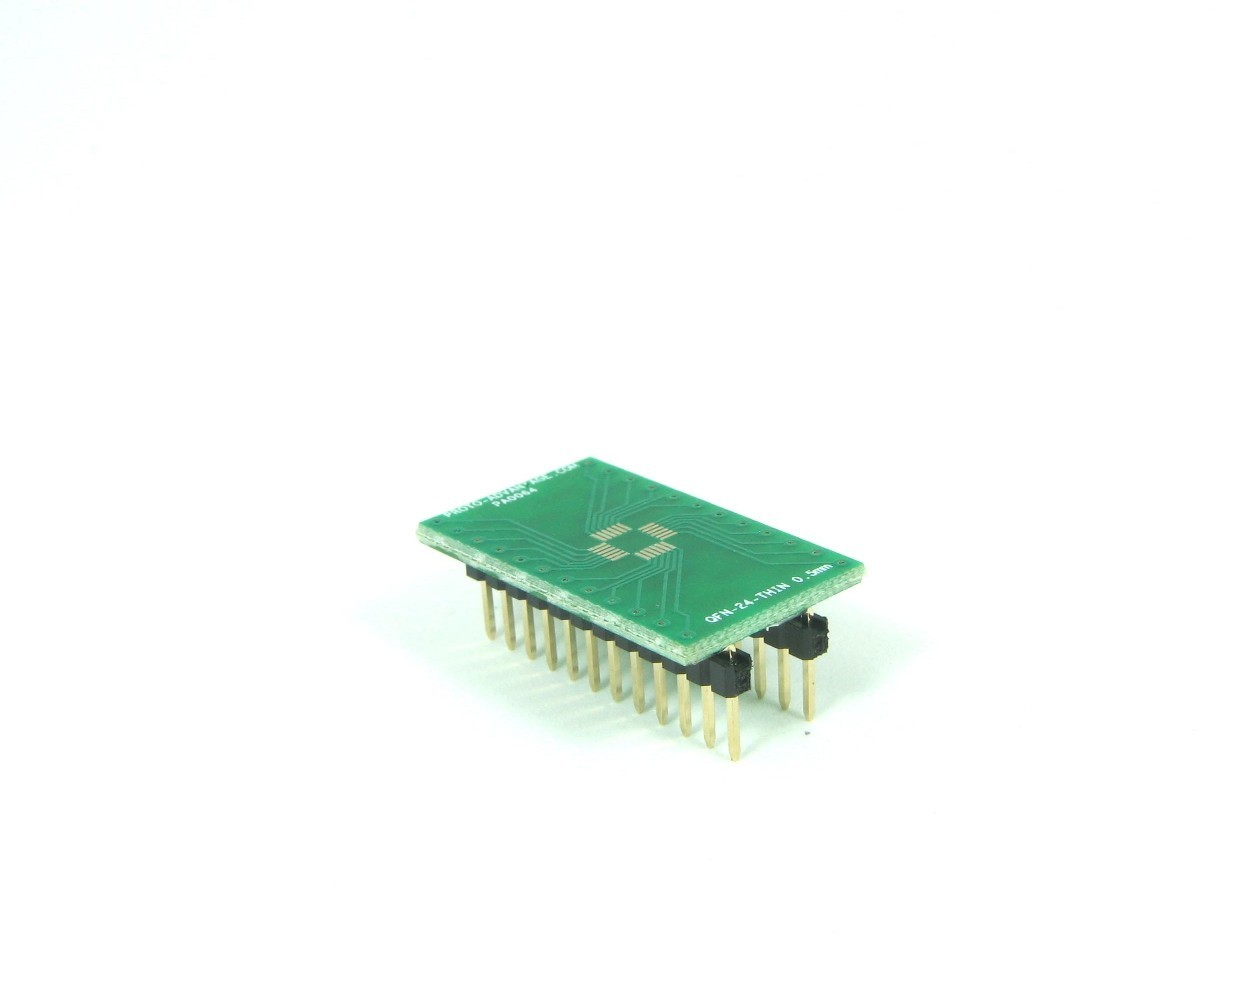 QFN-24-THIN to DIP-24 SMT Adapter (0.5 mm pitch, 4 x 4 mm body)